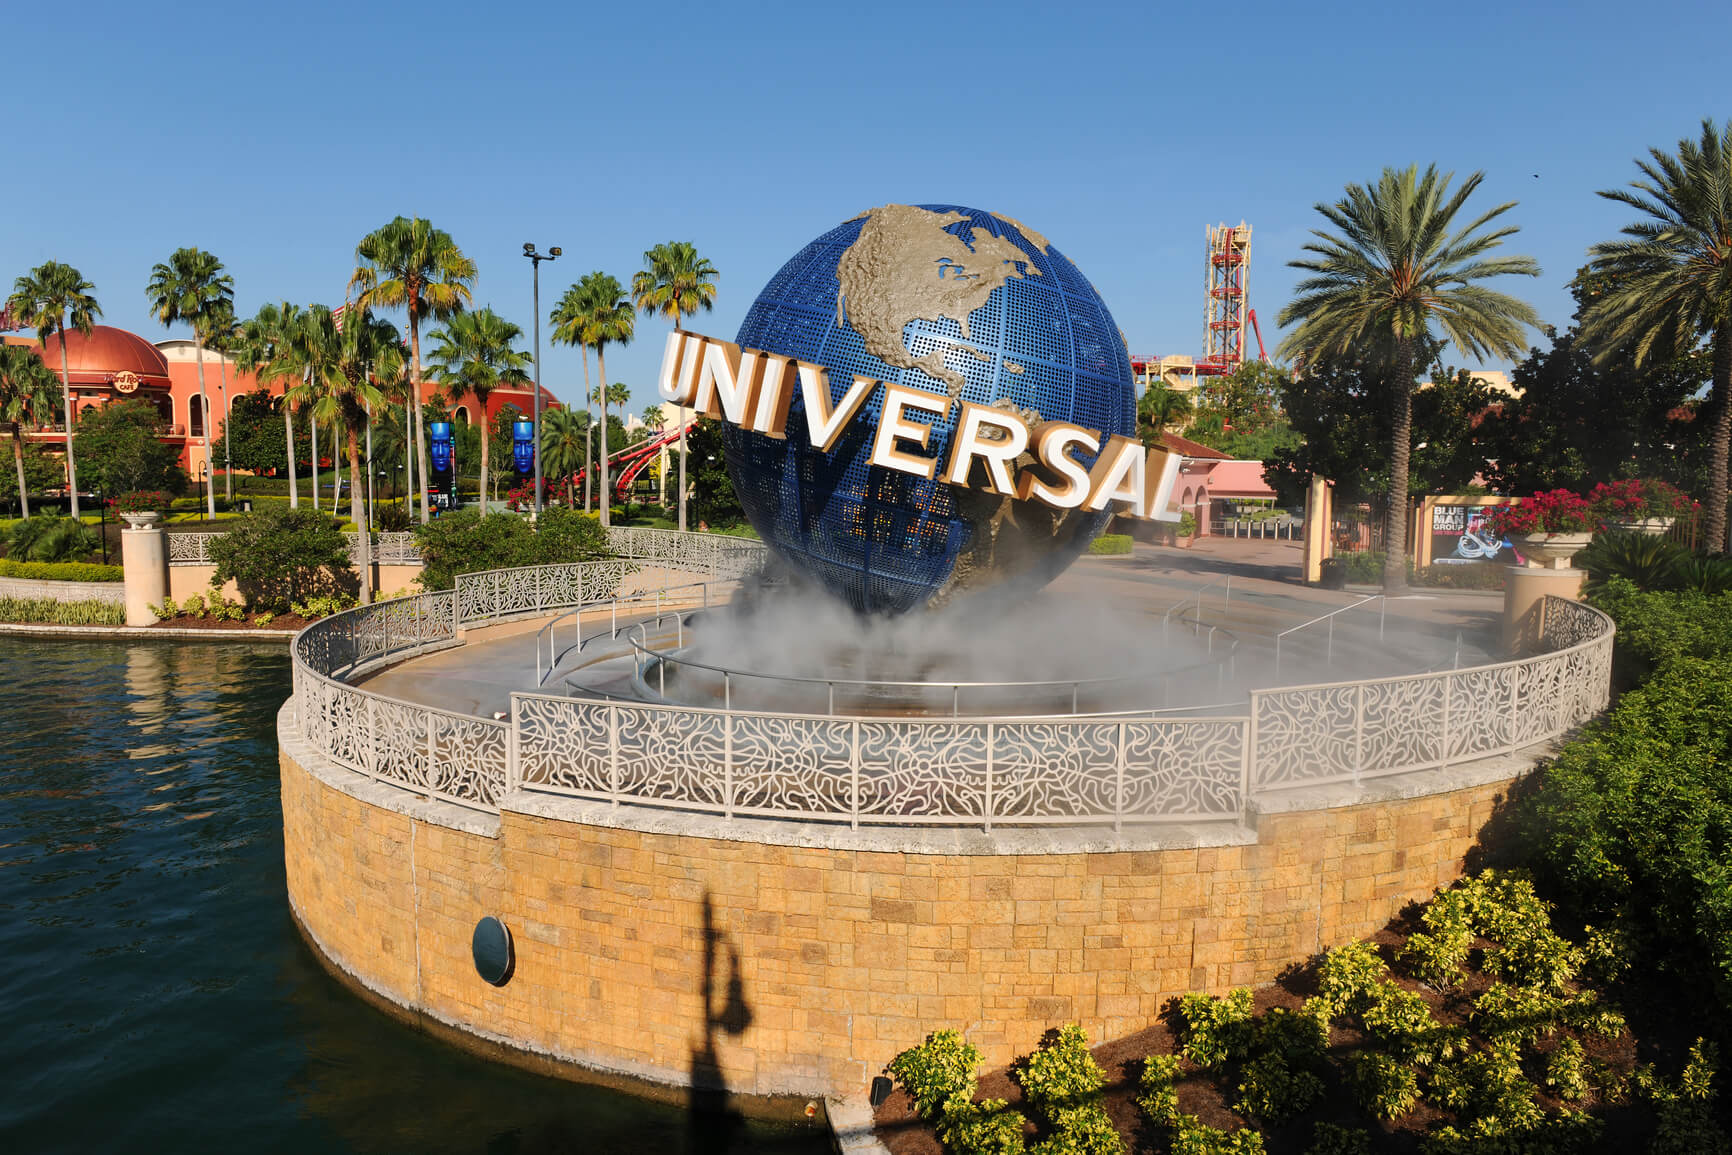 Non-stop from Bogota, Colombia to Orlando, Florida for only $261 USD roundtrip